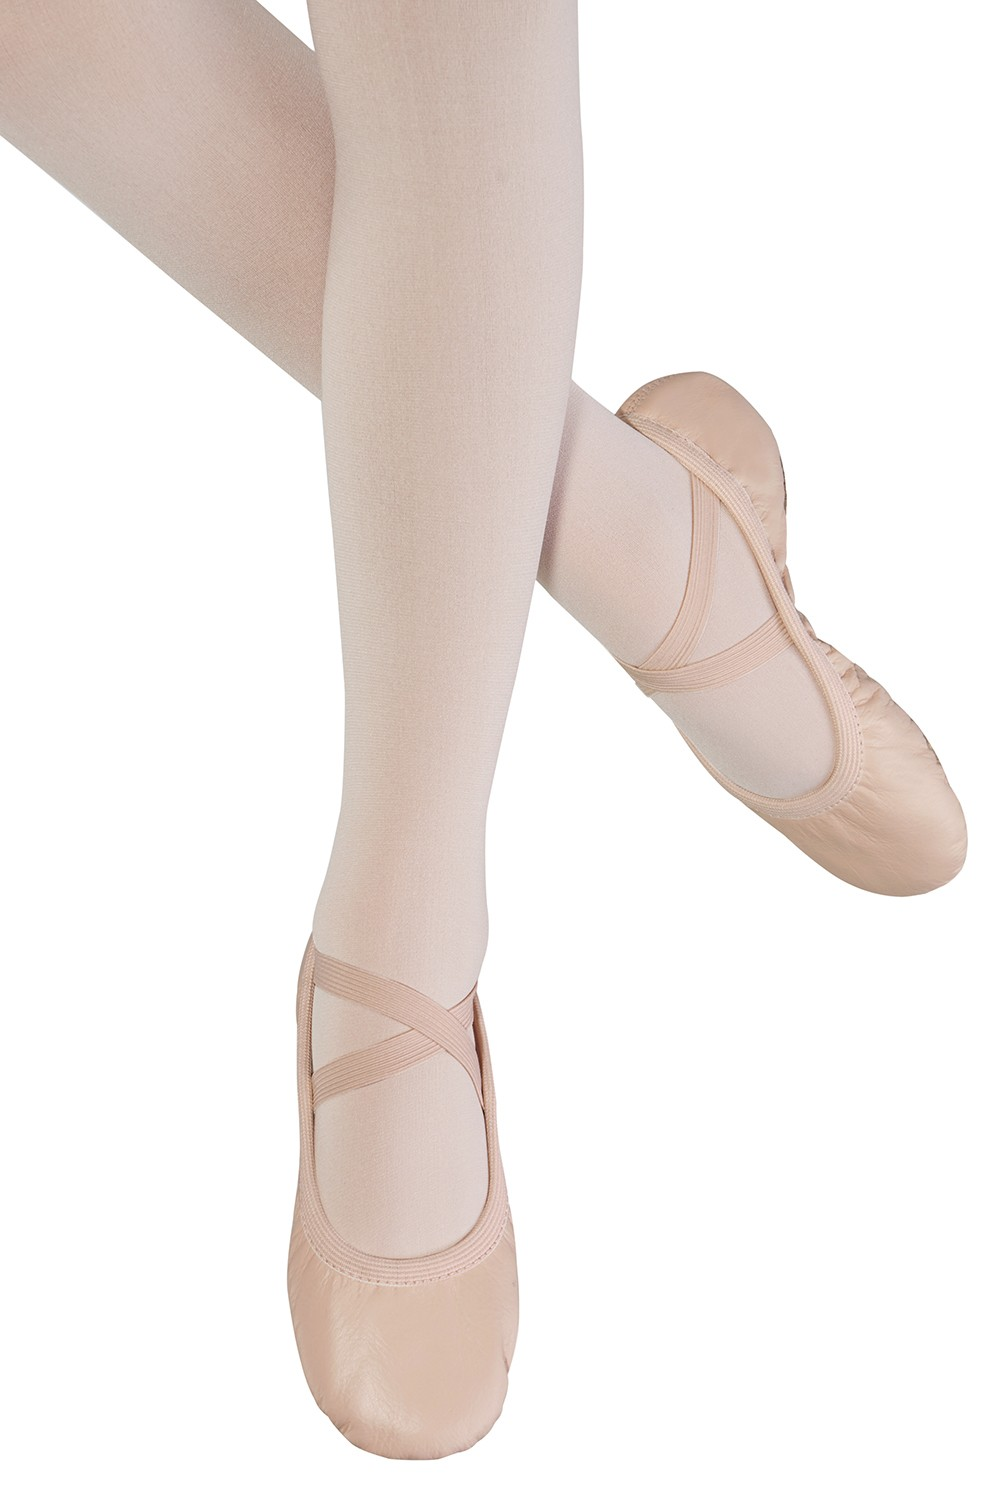 Odette Women's Ballet Shoes